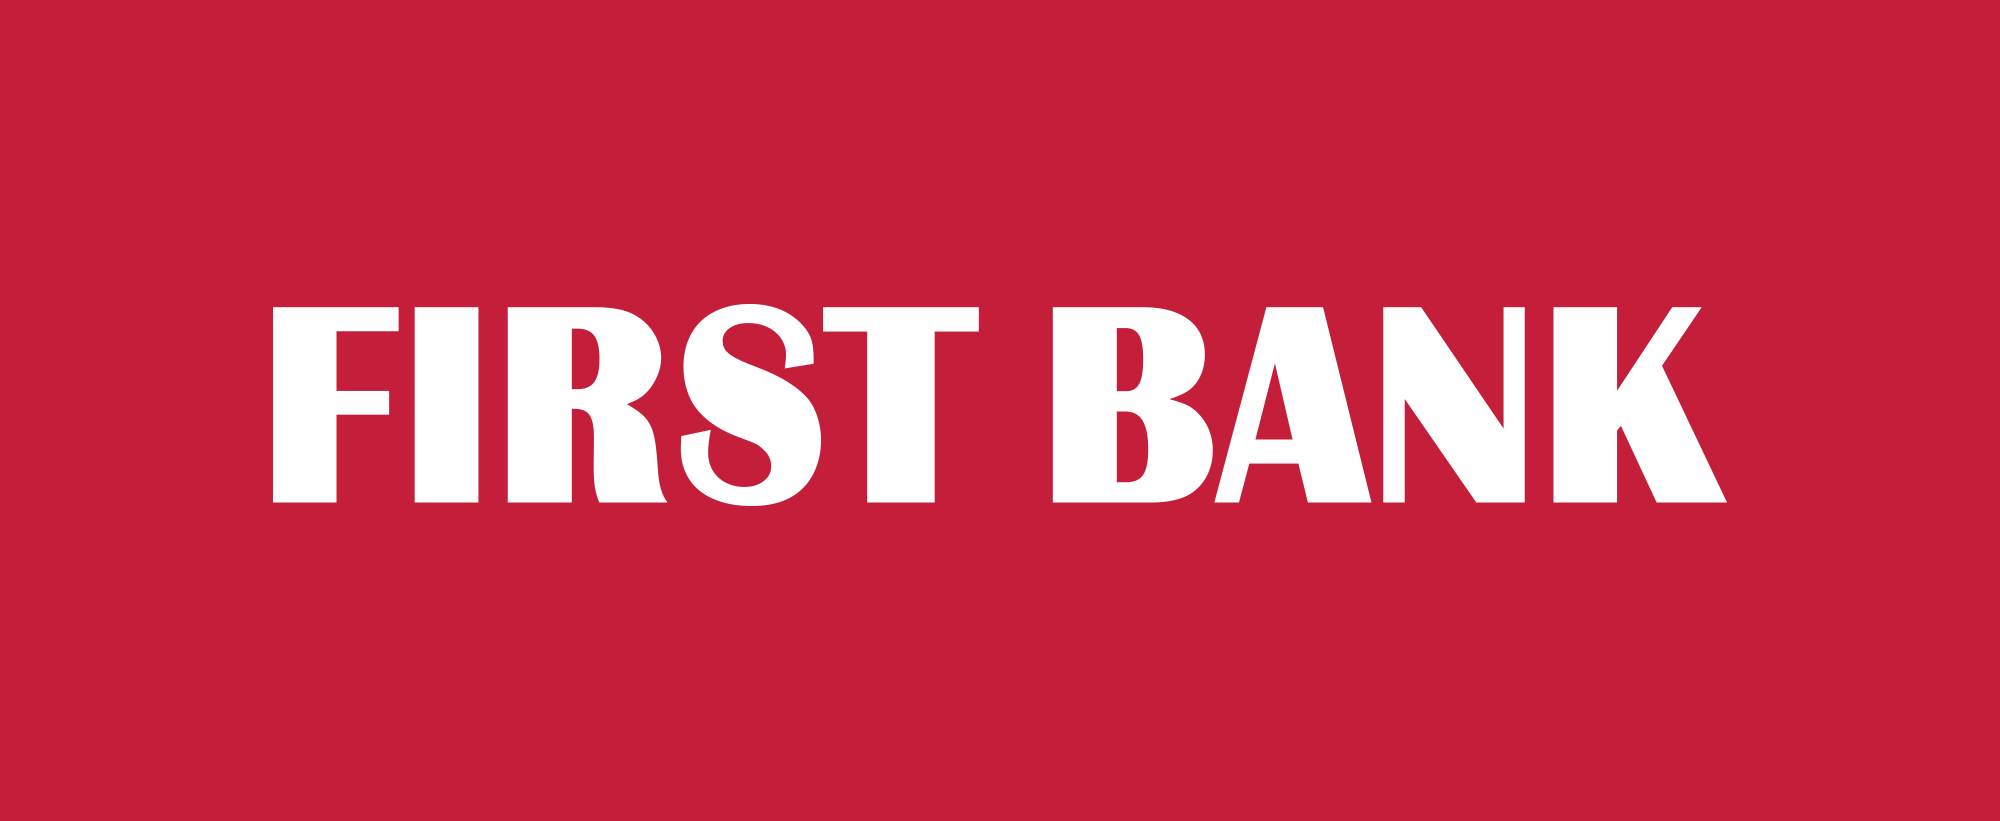 FirstBankLogo_white_on_red.jpg